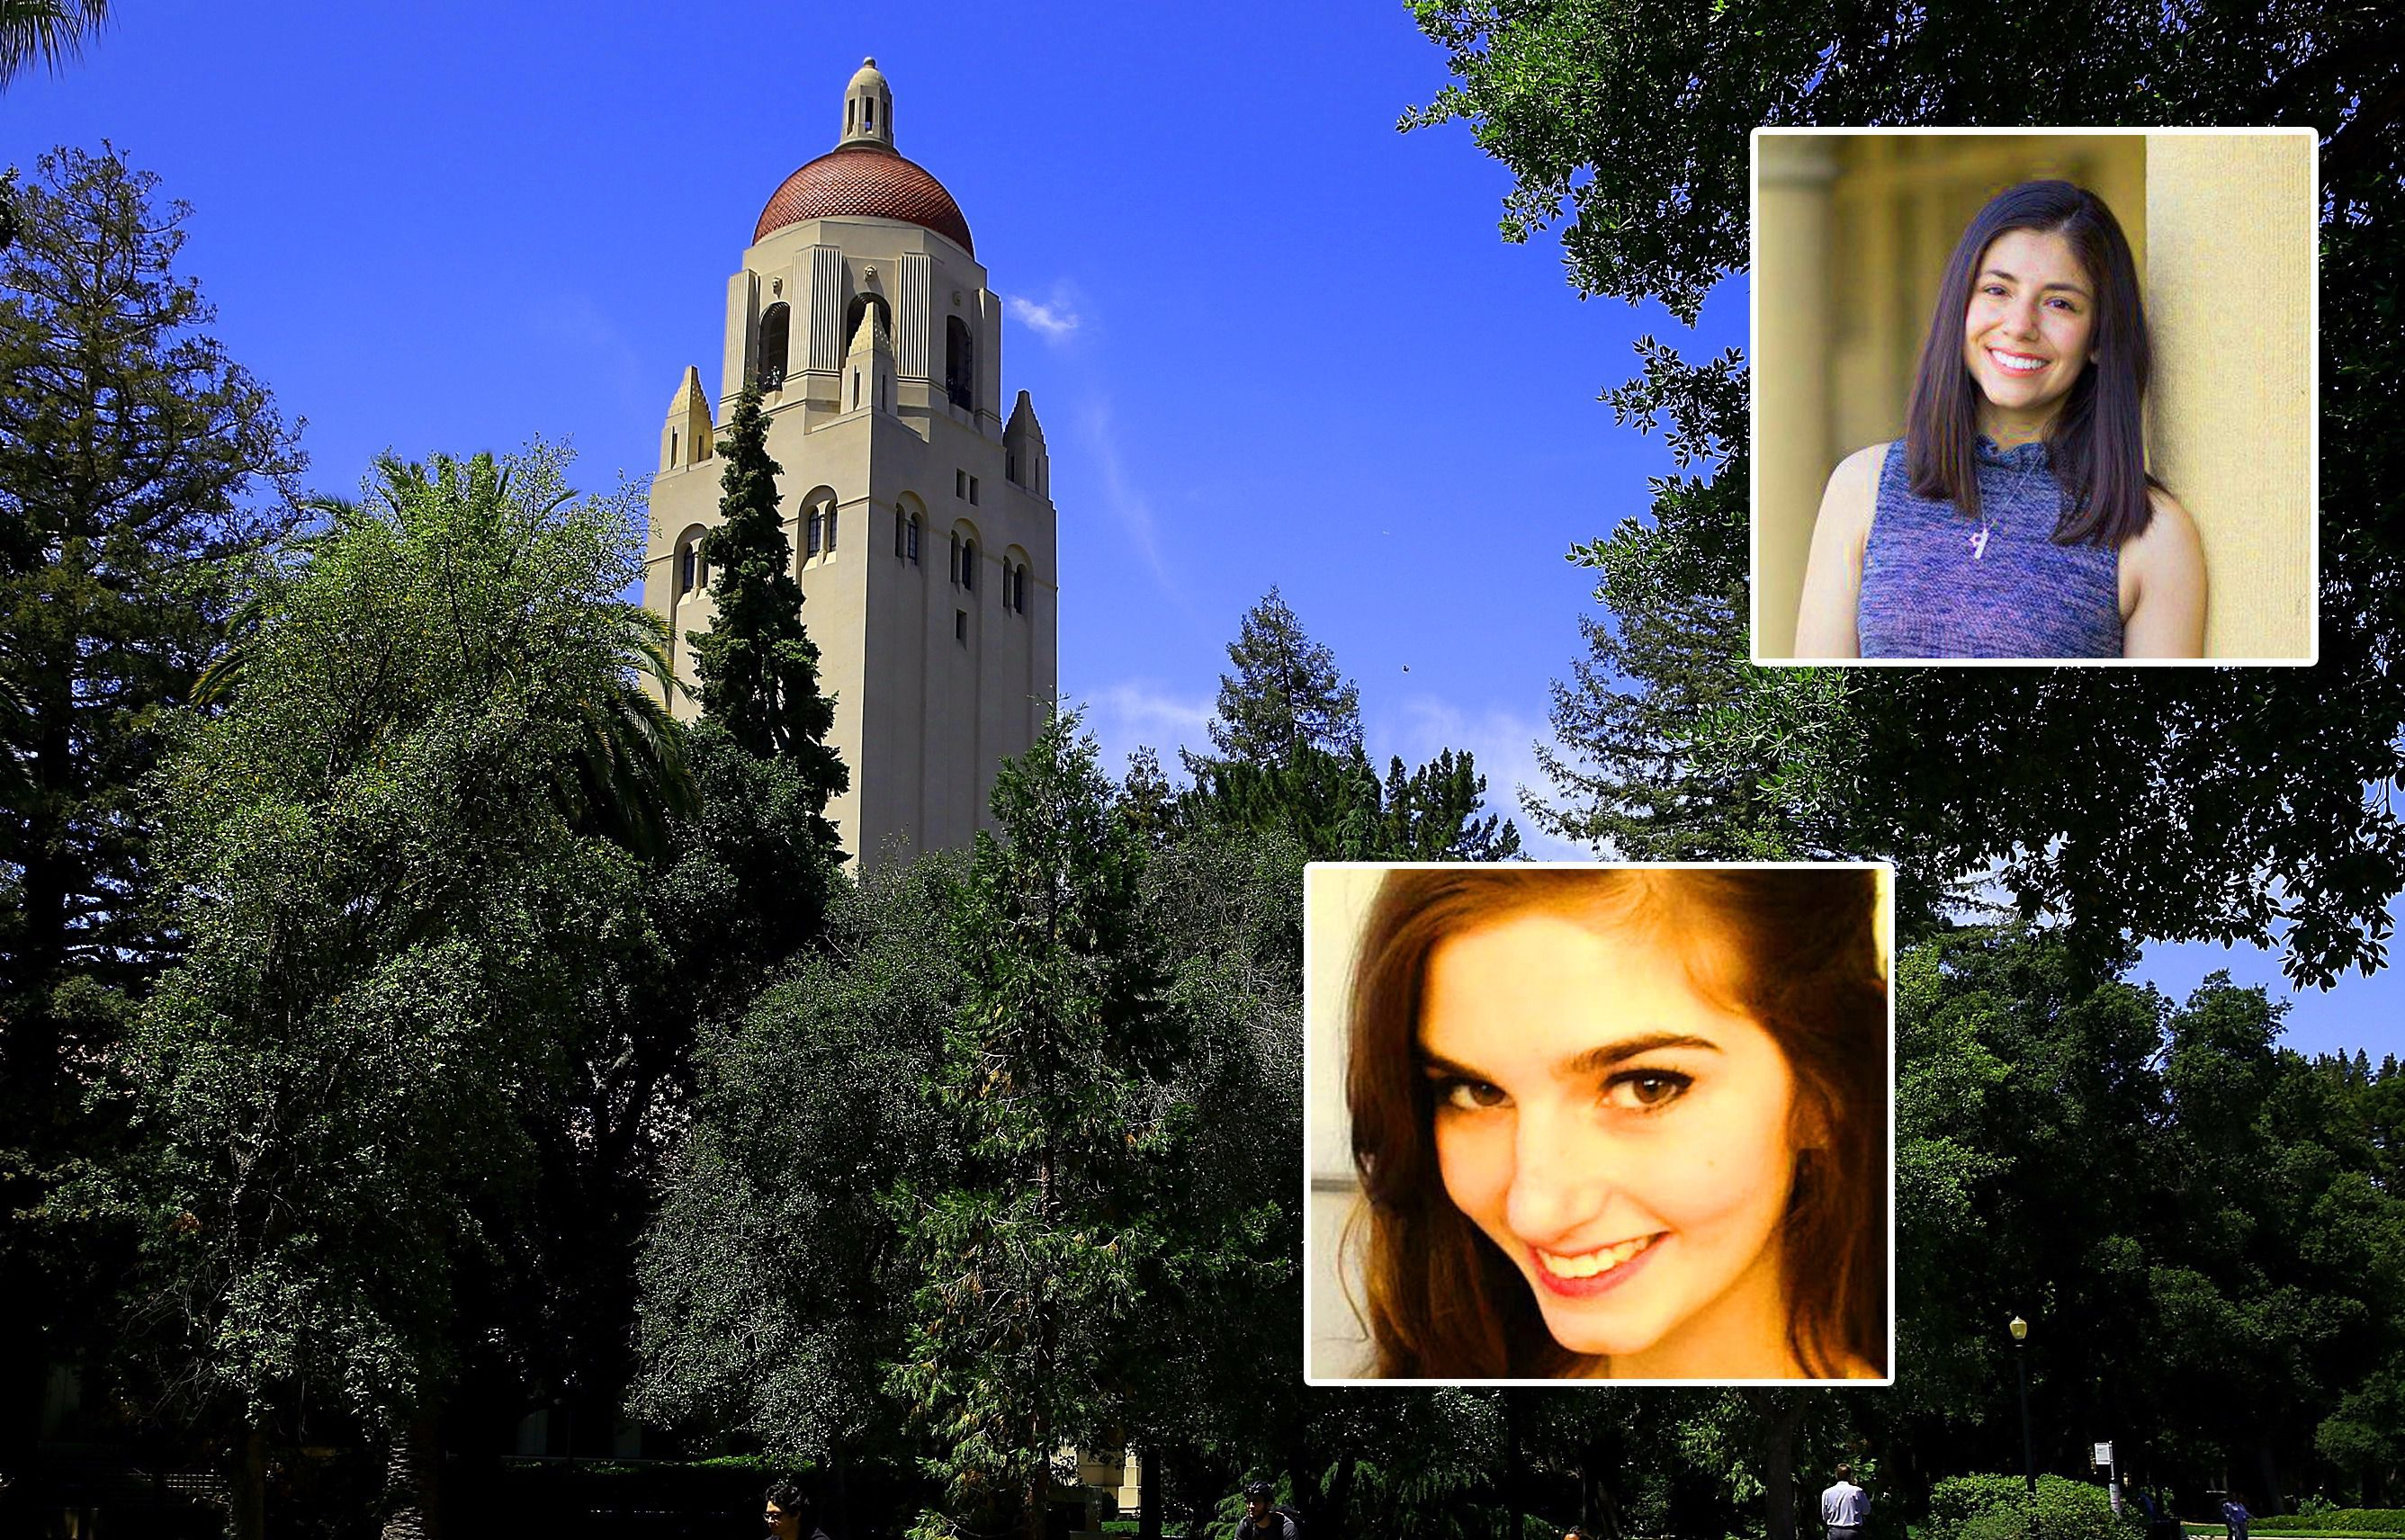 Standford Student Molly Hurwitz (top) and UCLA's Rachel Beyda (bottom) were both questioned about their Jewish identity.